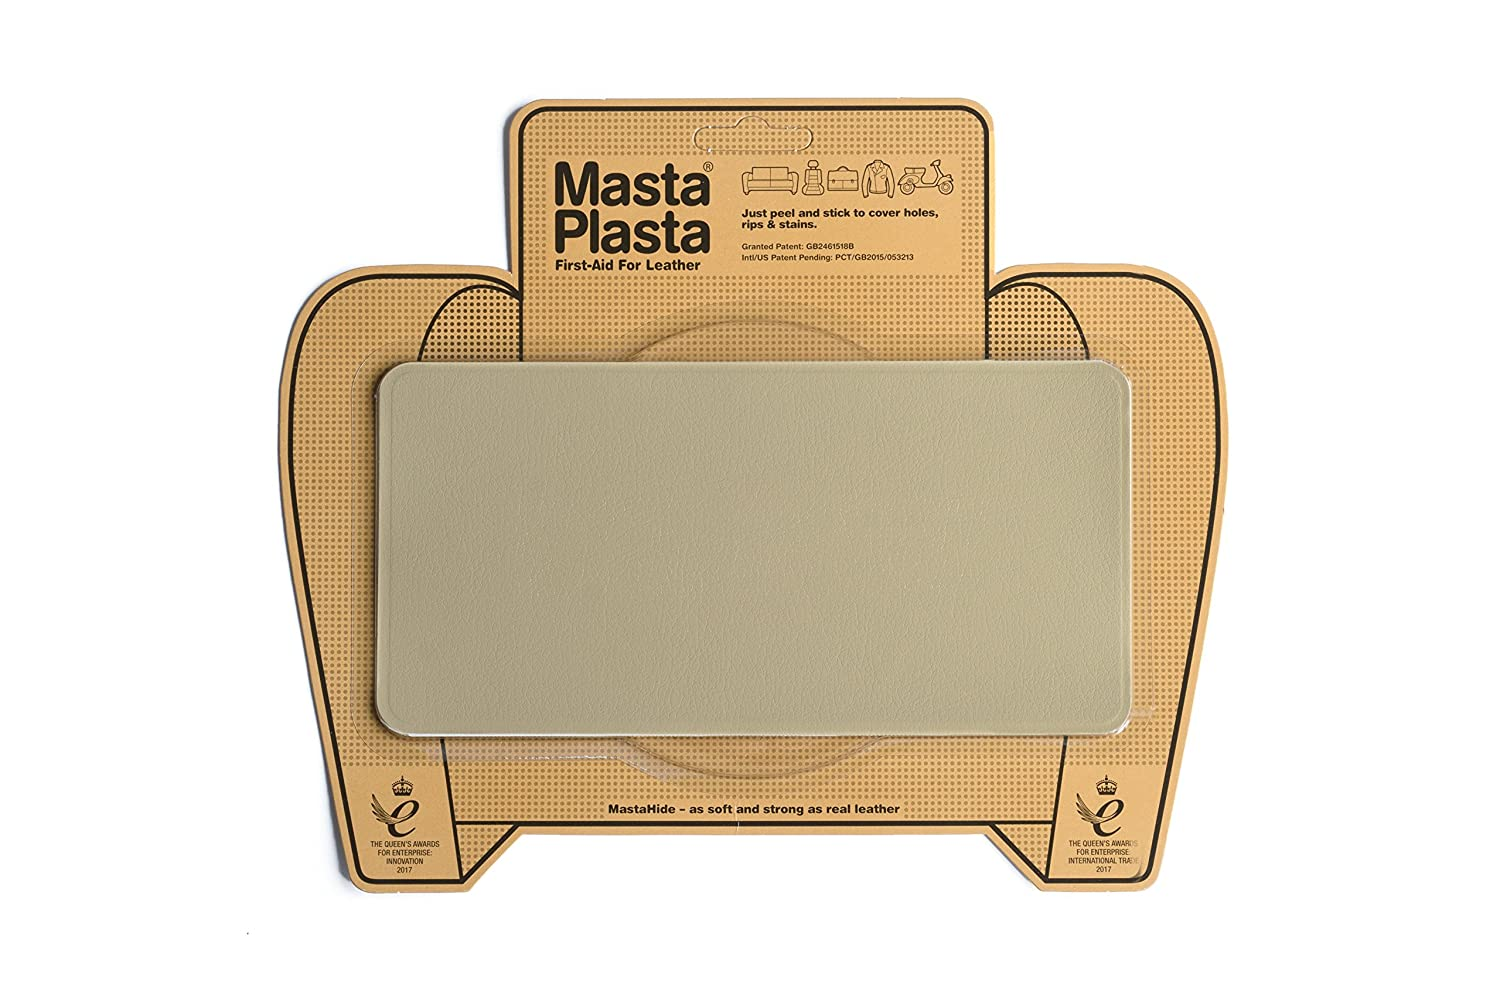 MastaPlasta, Leather Repair Patch, First-Aid for Sofas, Car Seats, Handbags, Jackets, Plain, Beige large Stitch 8x4 4336847738